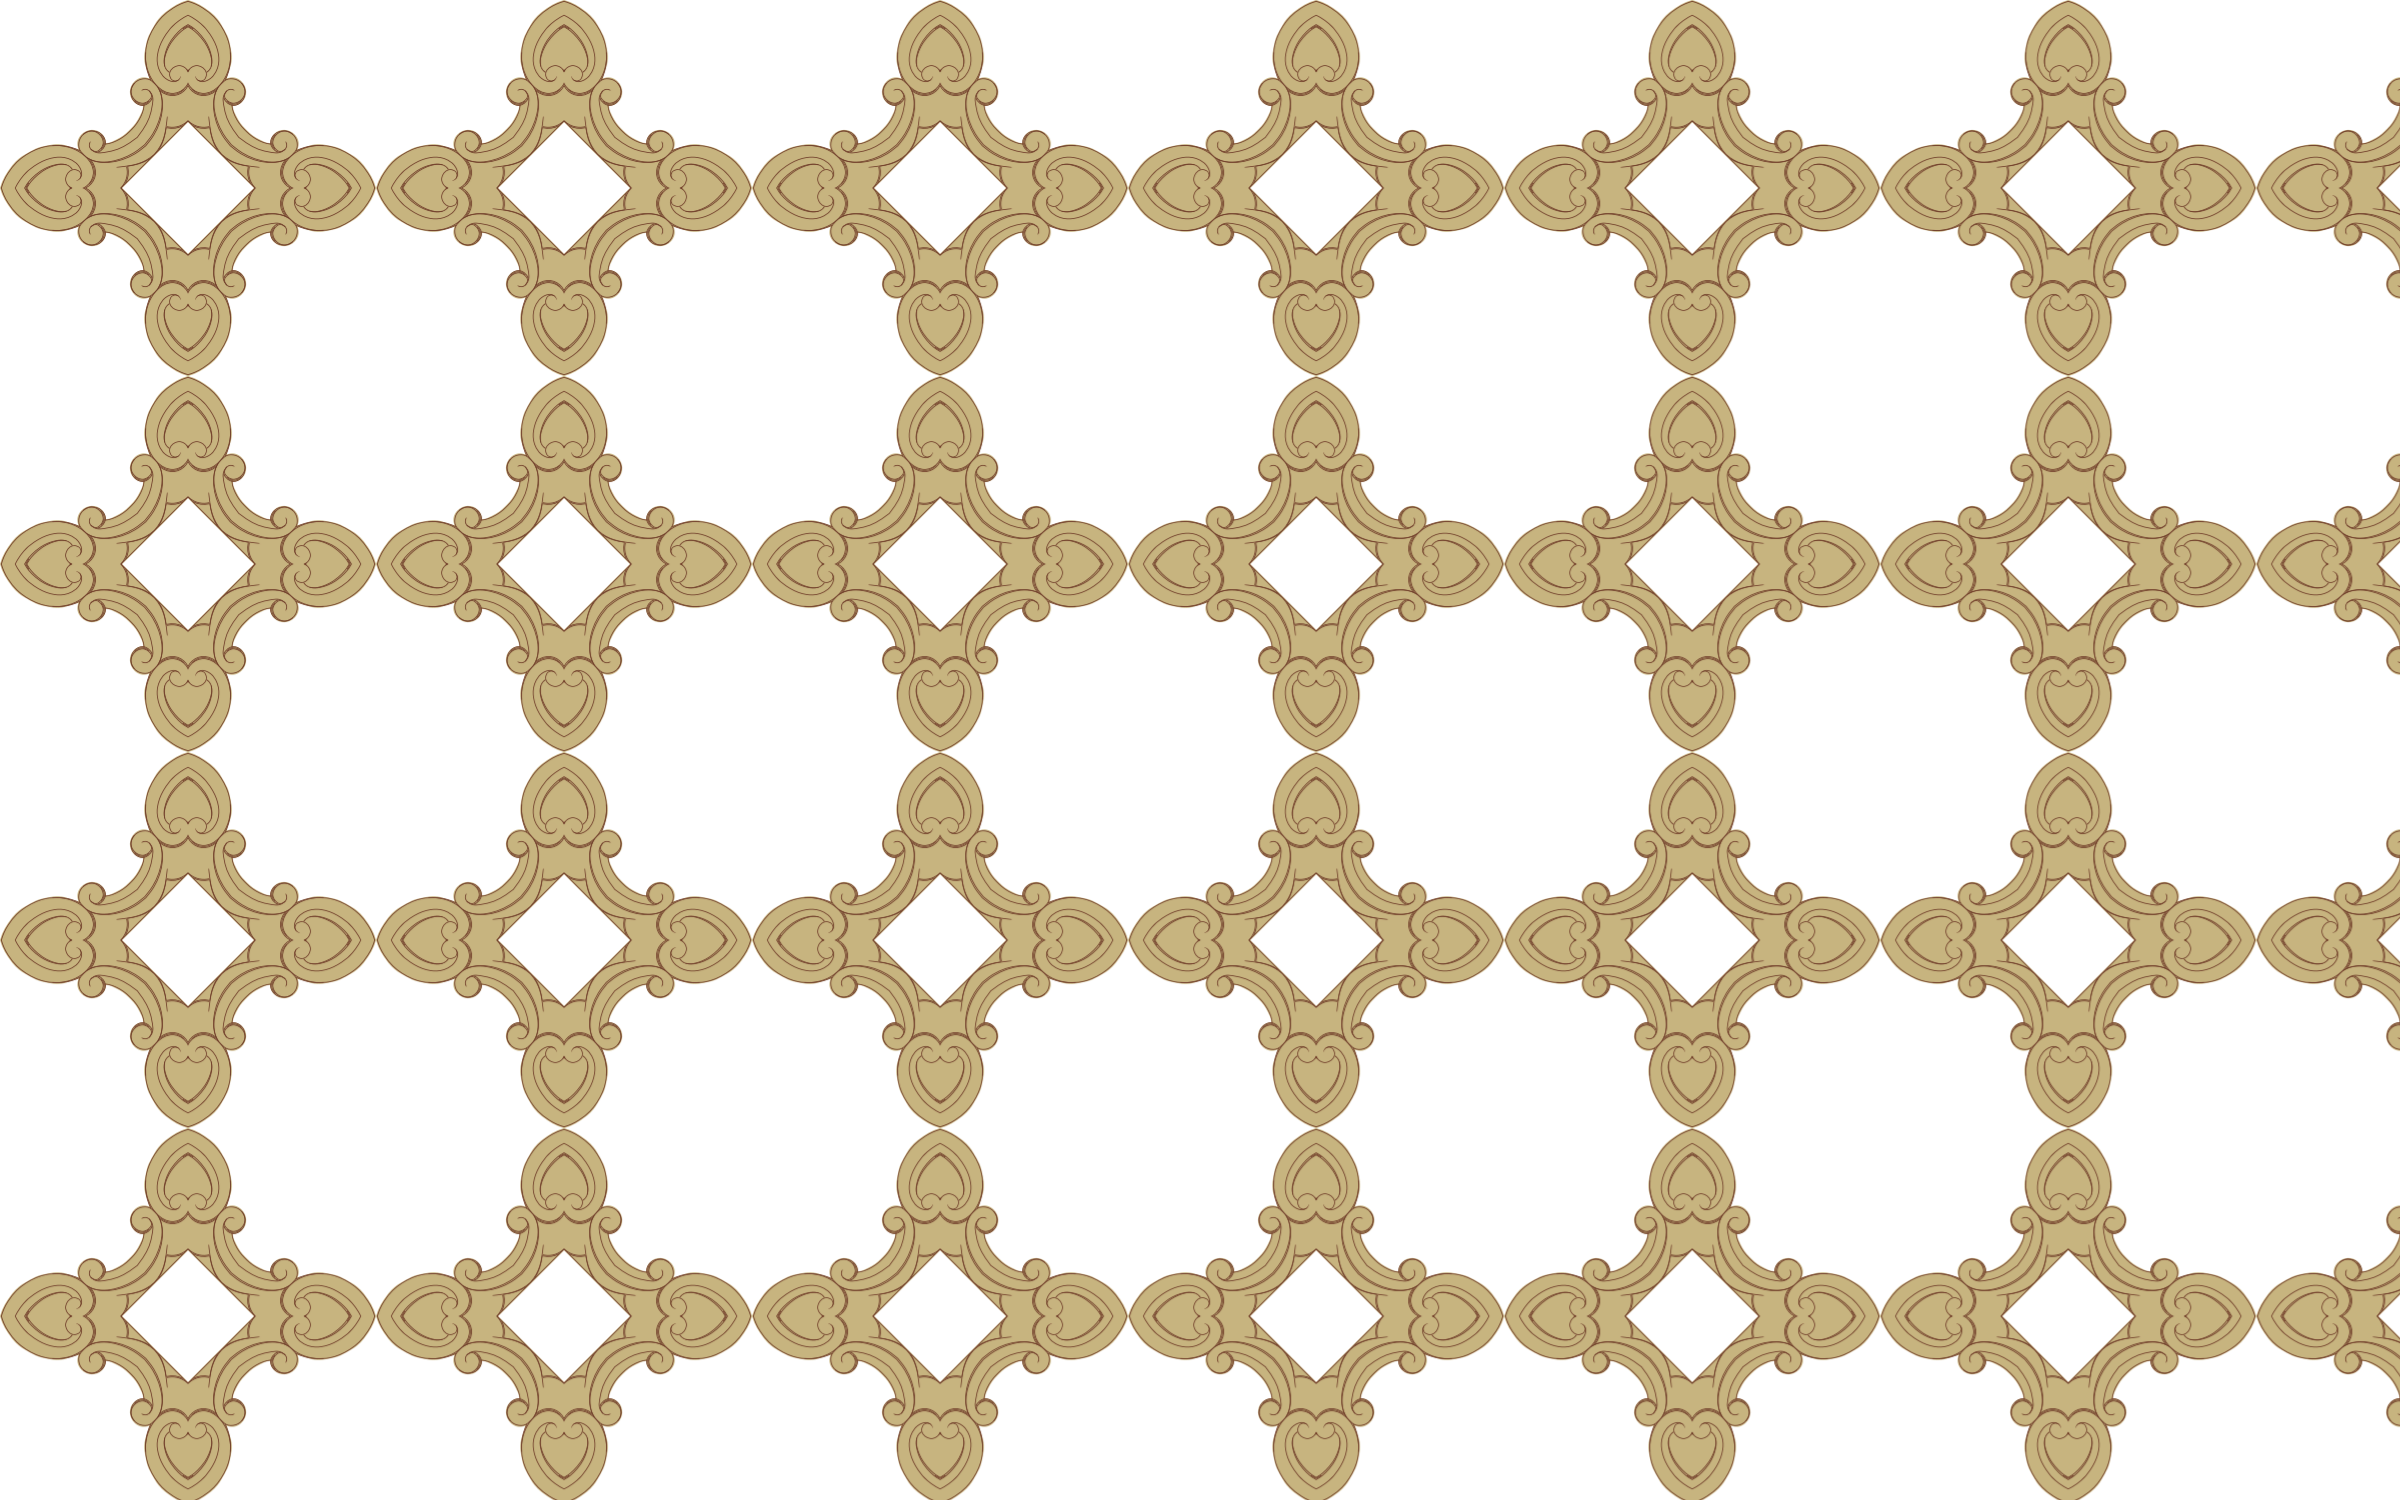 Seamless Ornate Frame 24 Derived Pattern 3 by GDJ